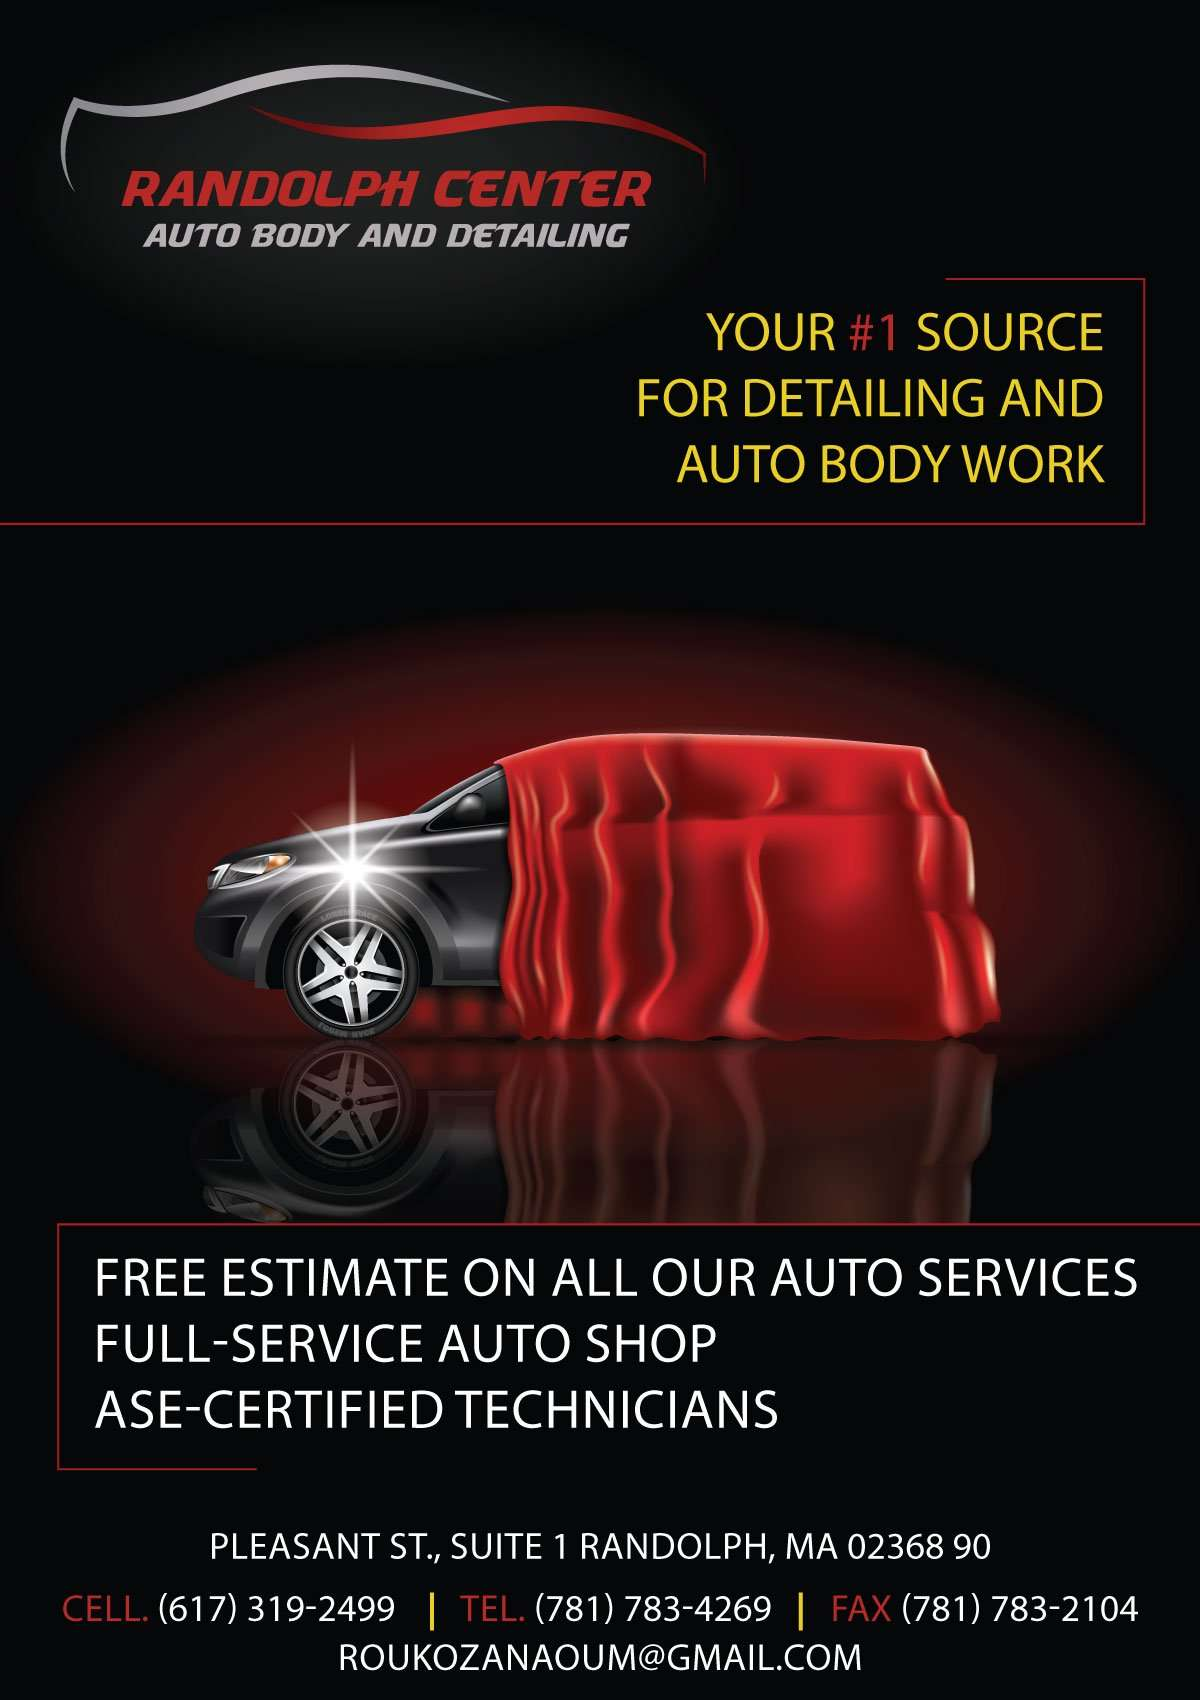 Randolph Center – Auto Body and Detailing, Profile News - بروفايل نيوز